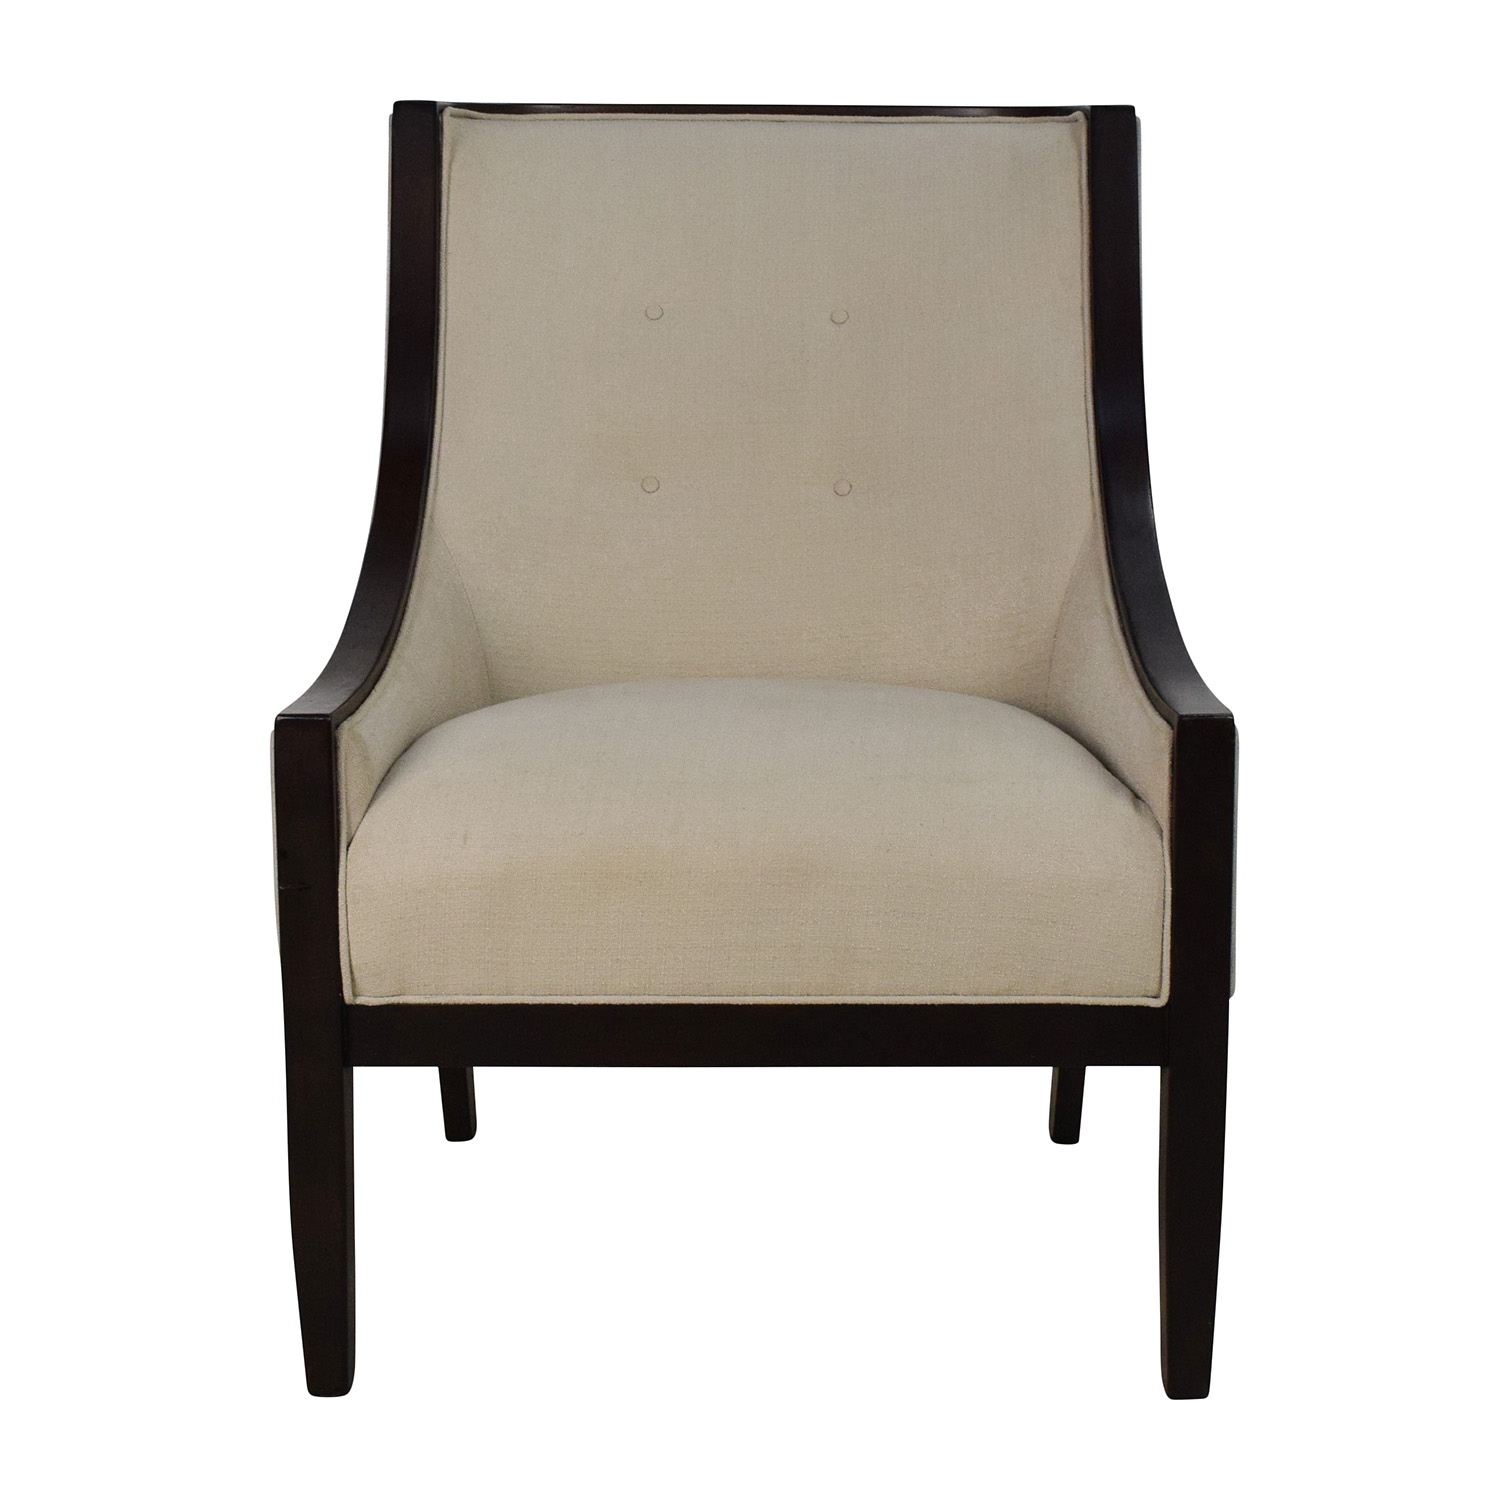 Tufted High Back Chair 87 Off Bloomingdale S Bloomingdale S Tufted Cream High Back